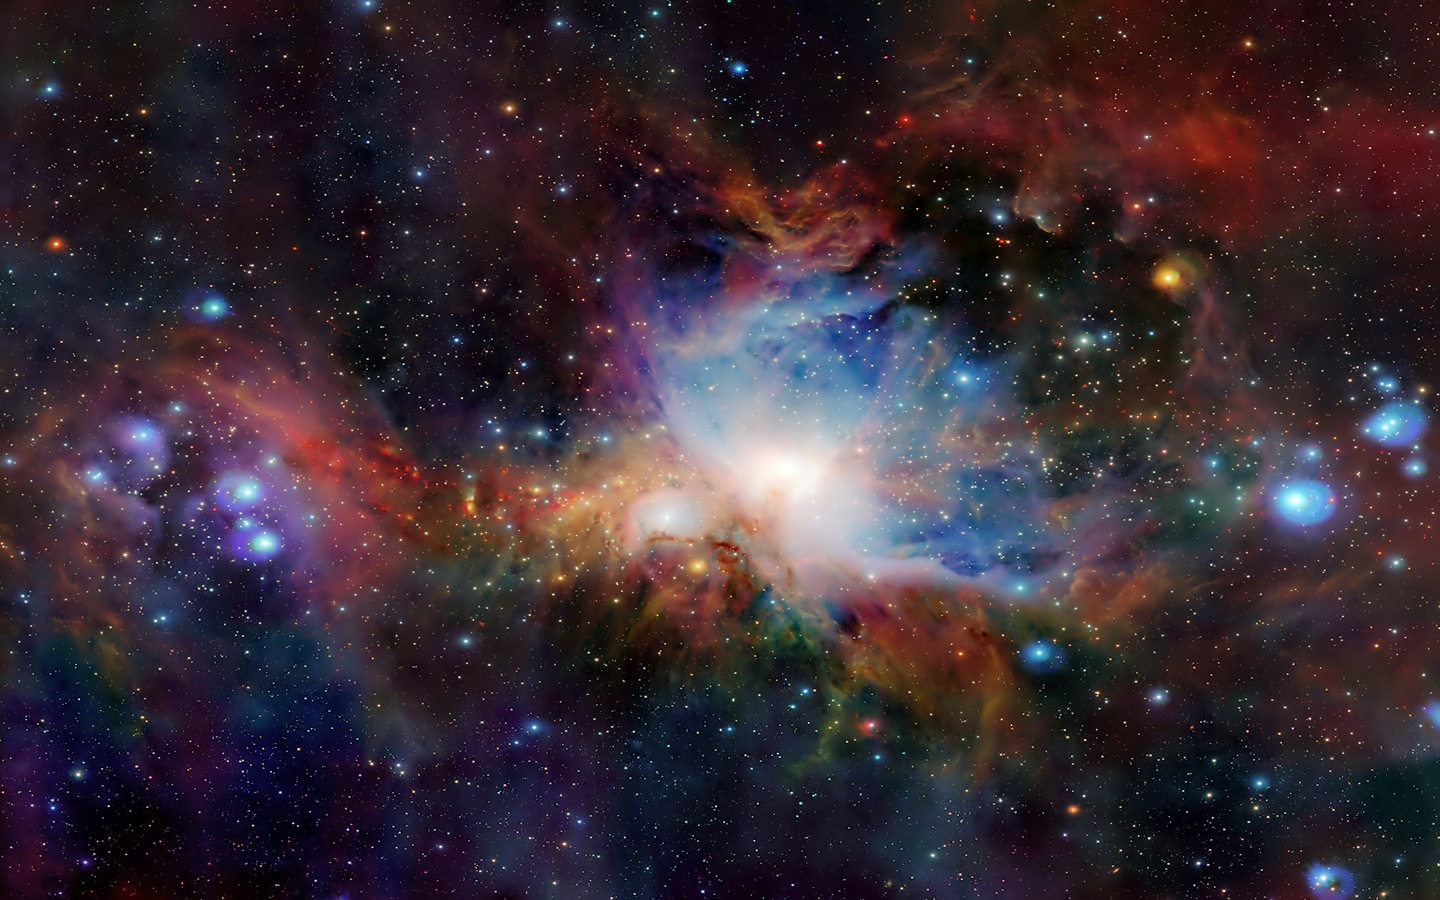 Free Download Nebula Wallpaper Hd 1440x900 For Your